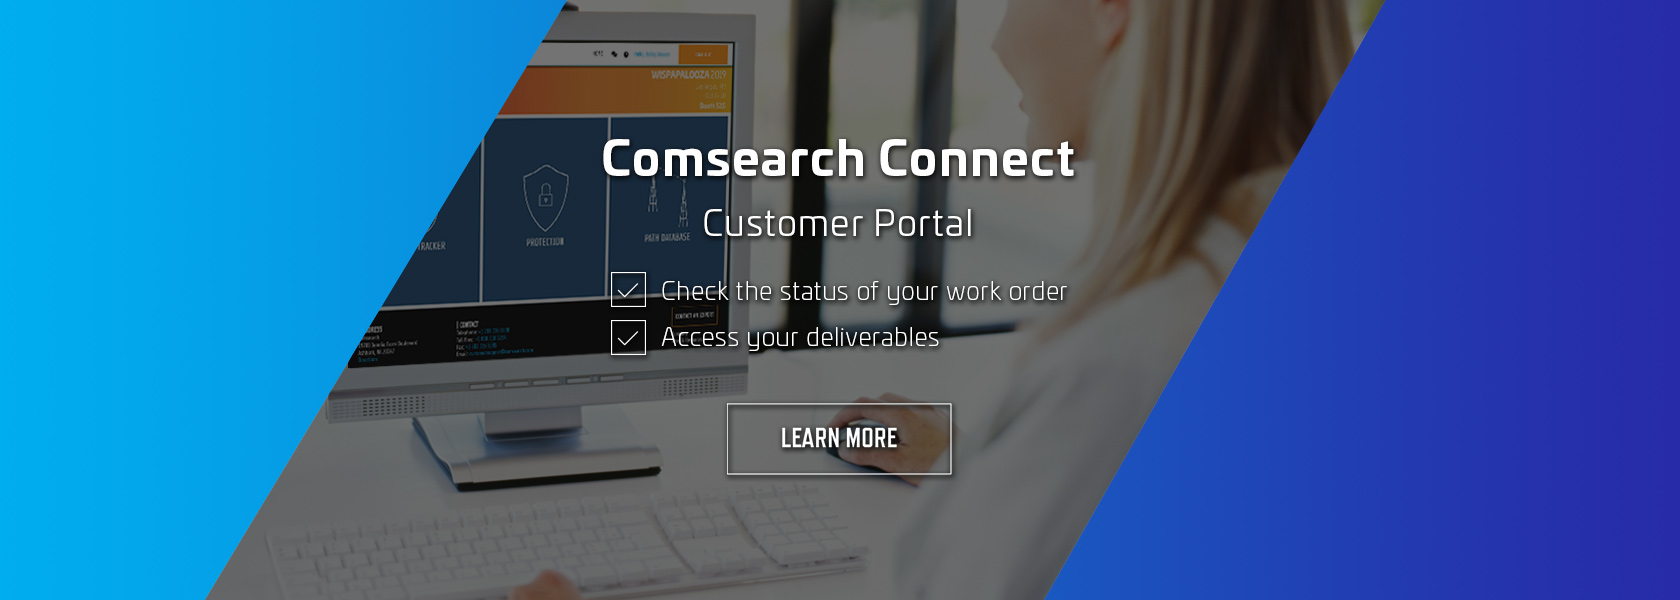 Comsearch Connect Customer Portal